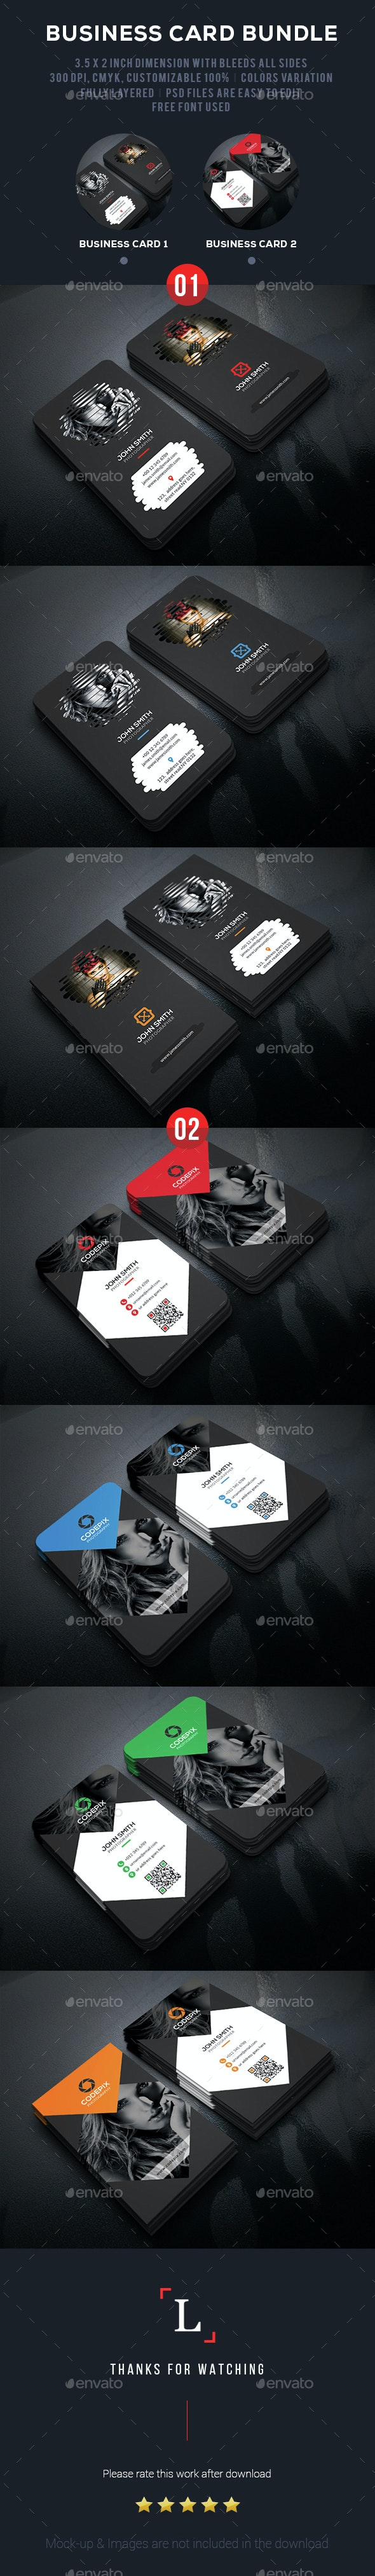 Photography Business Card Bundle - Business Cards Print Templates